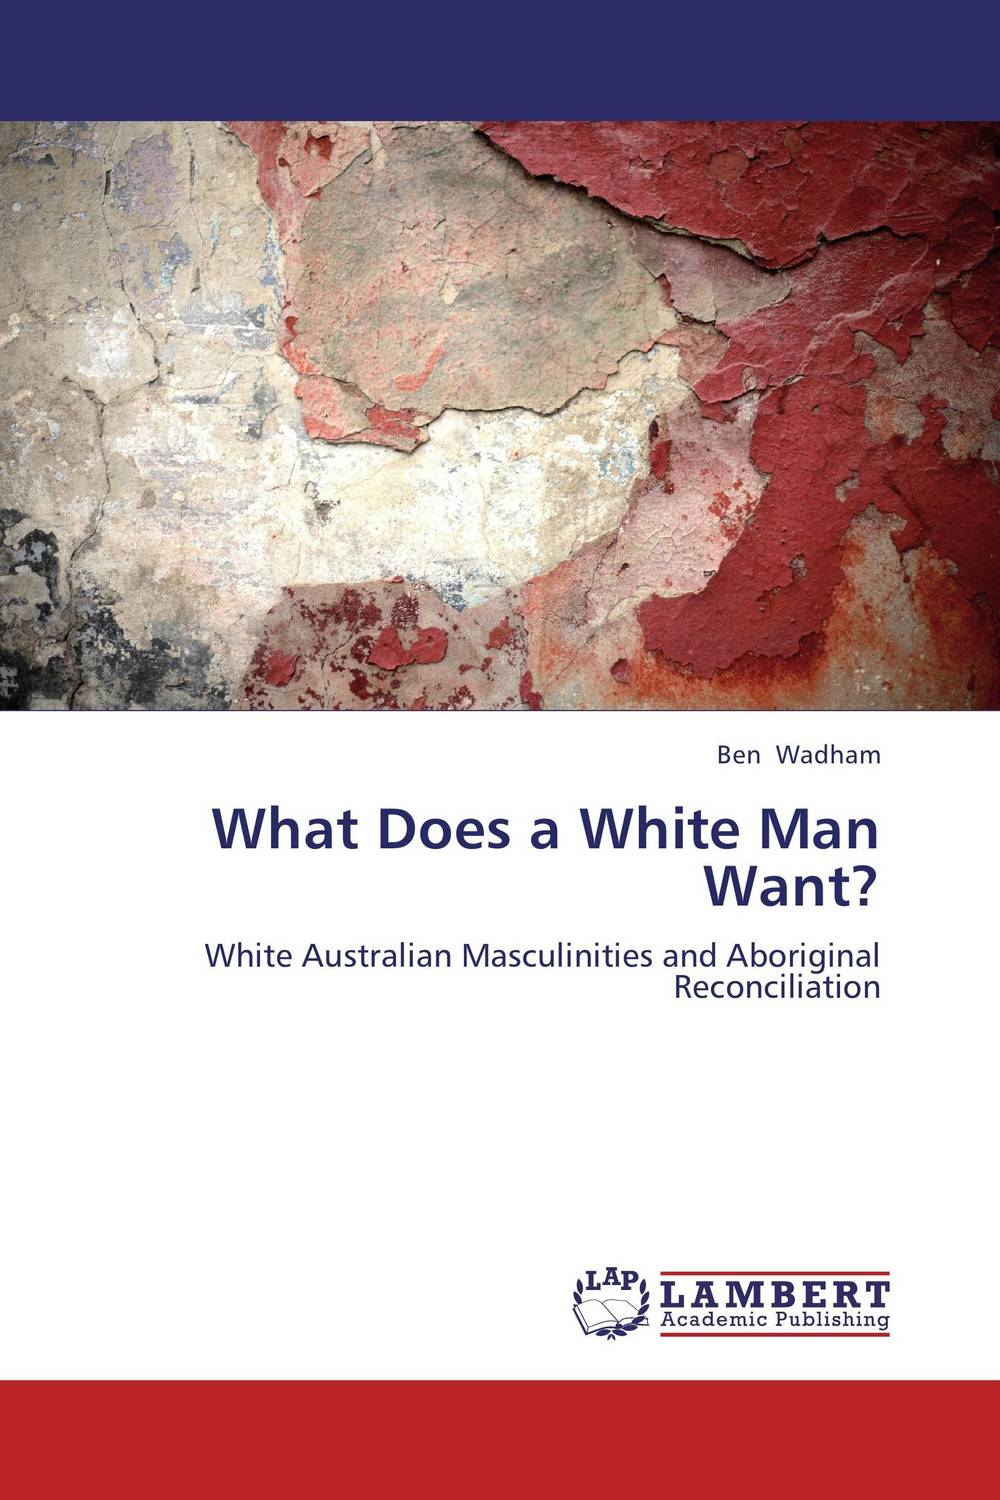 What Does a White Man Want? blake william blake s poetry